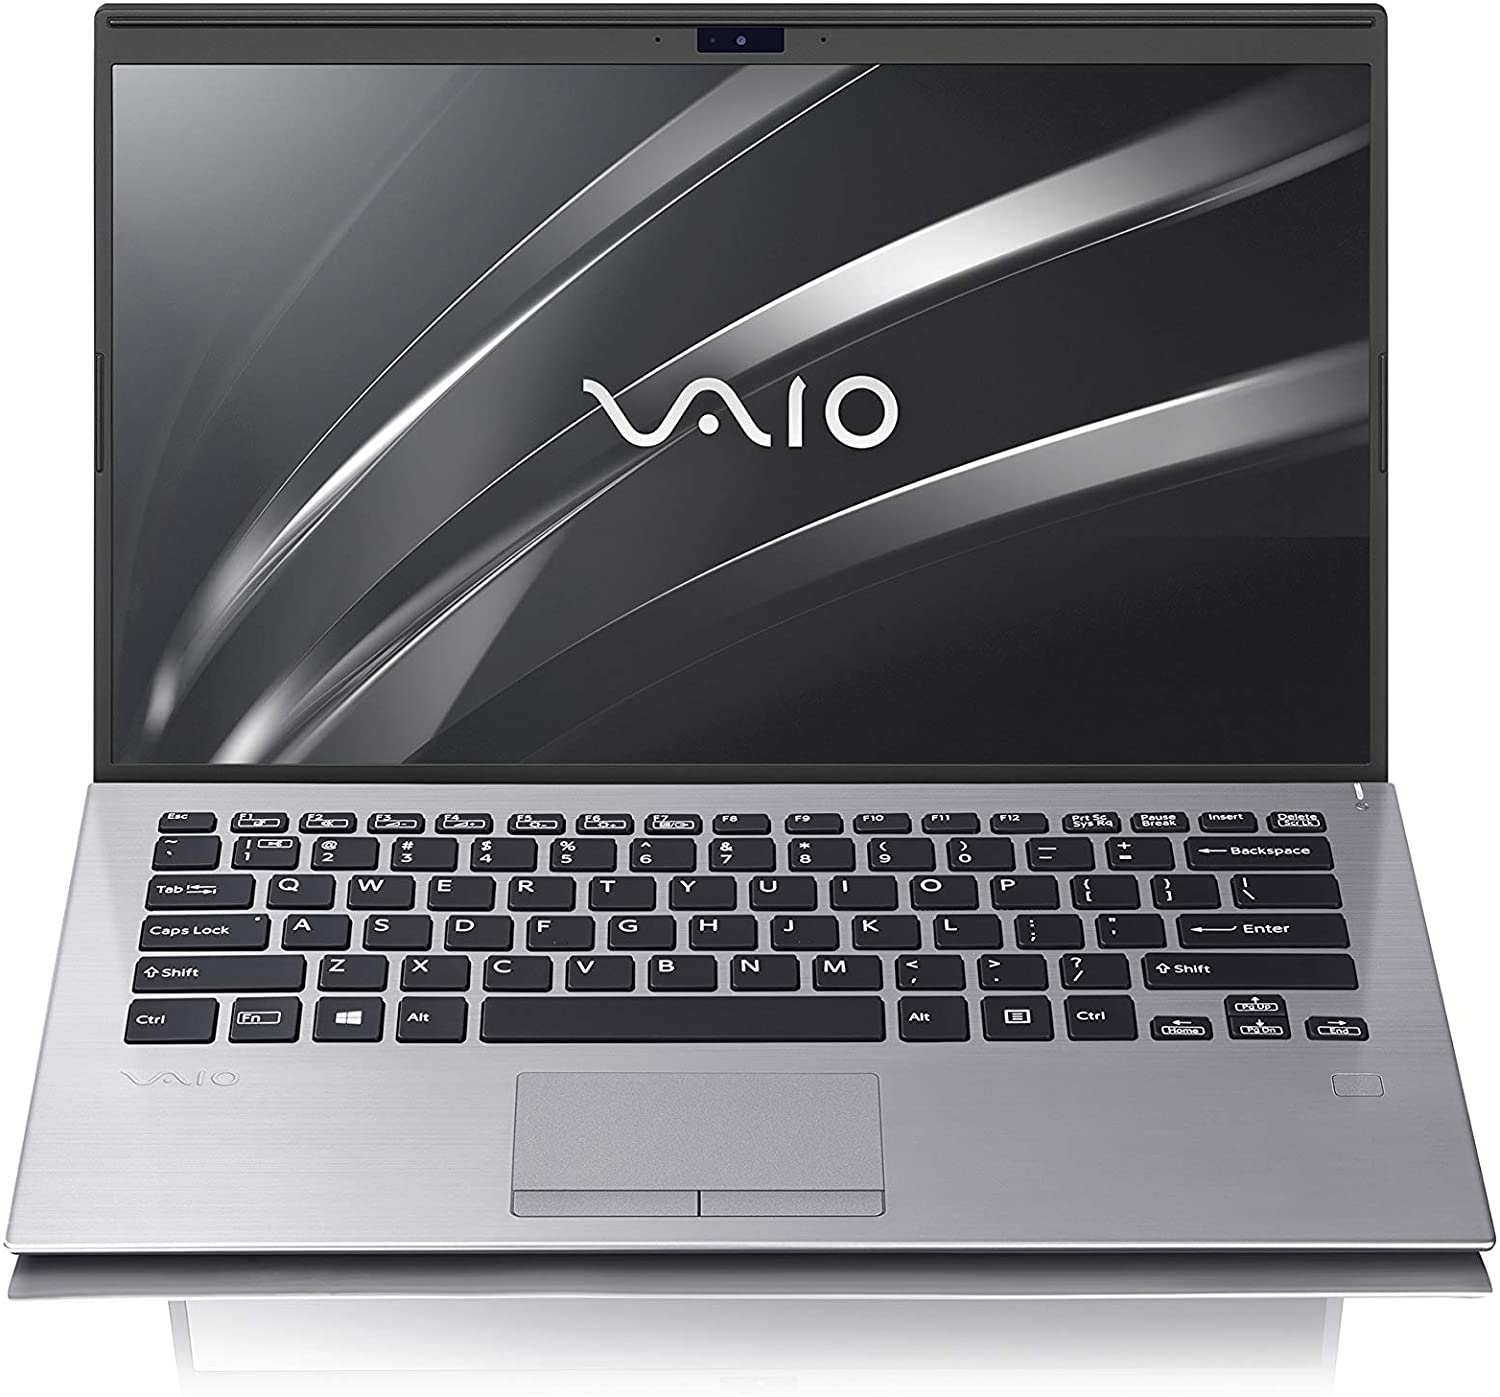 Sony VAIO SX14 - Intel Core i7-8565U | 16GB Memory (RAM) | 256GB PCIe SSD | Windows 10 Pro | 14.0-Inch Full HD (1920x1080) Display | Silver